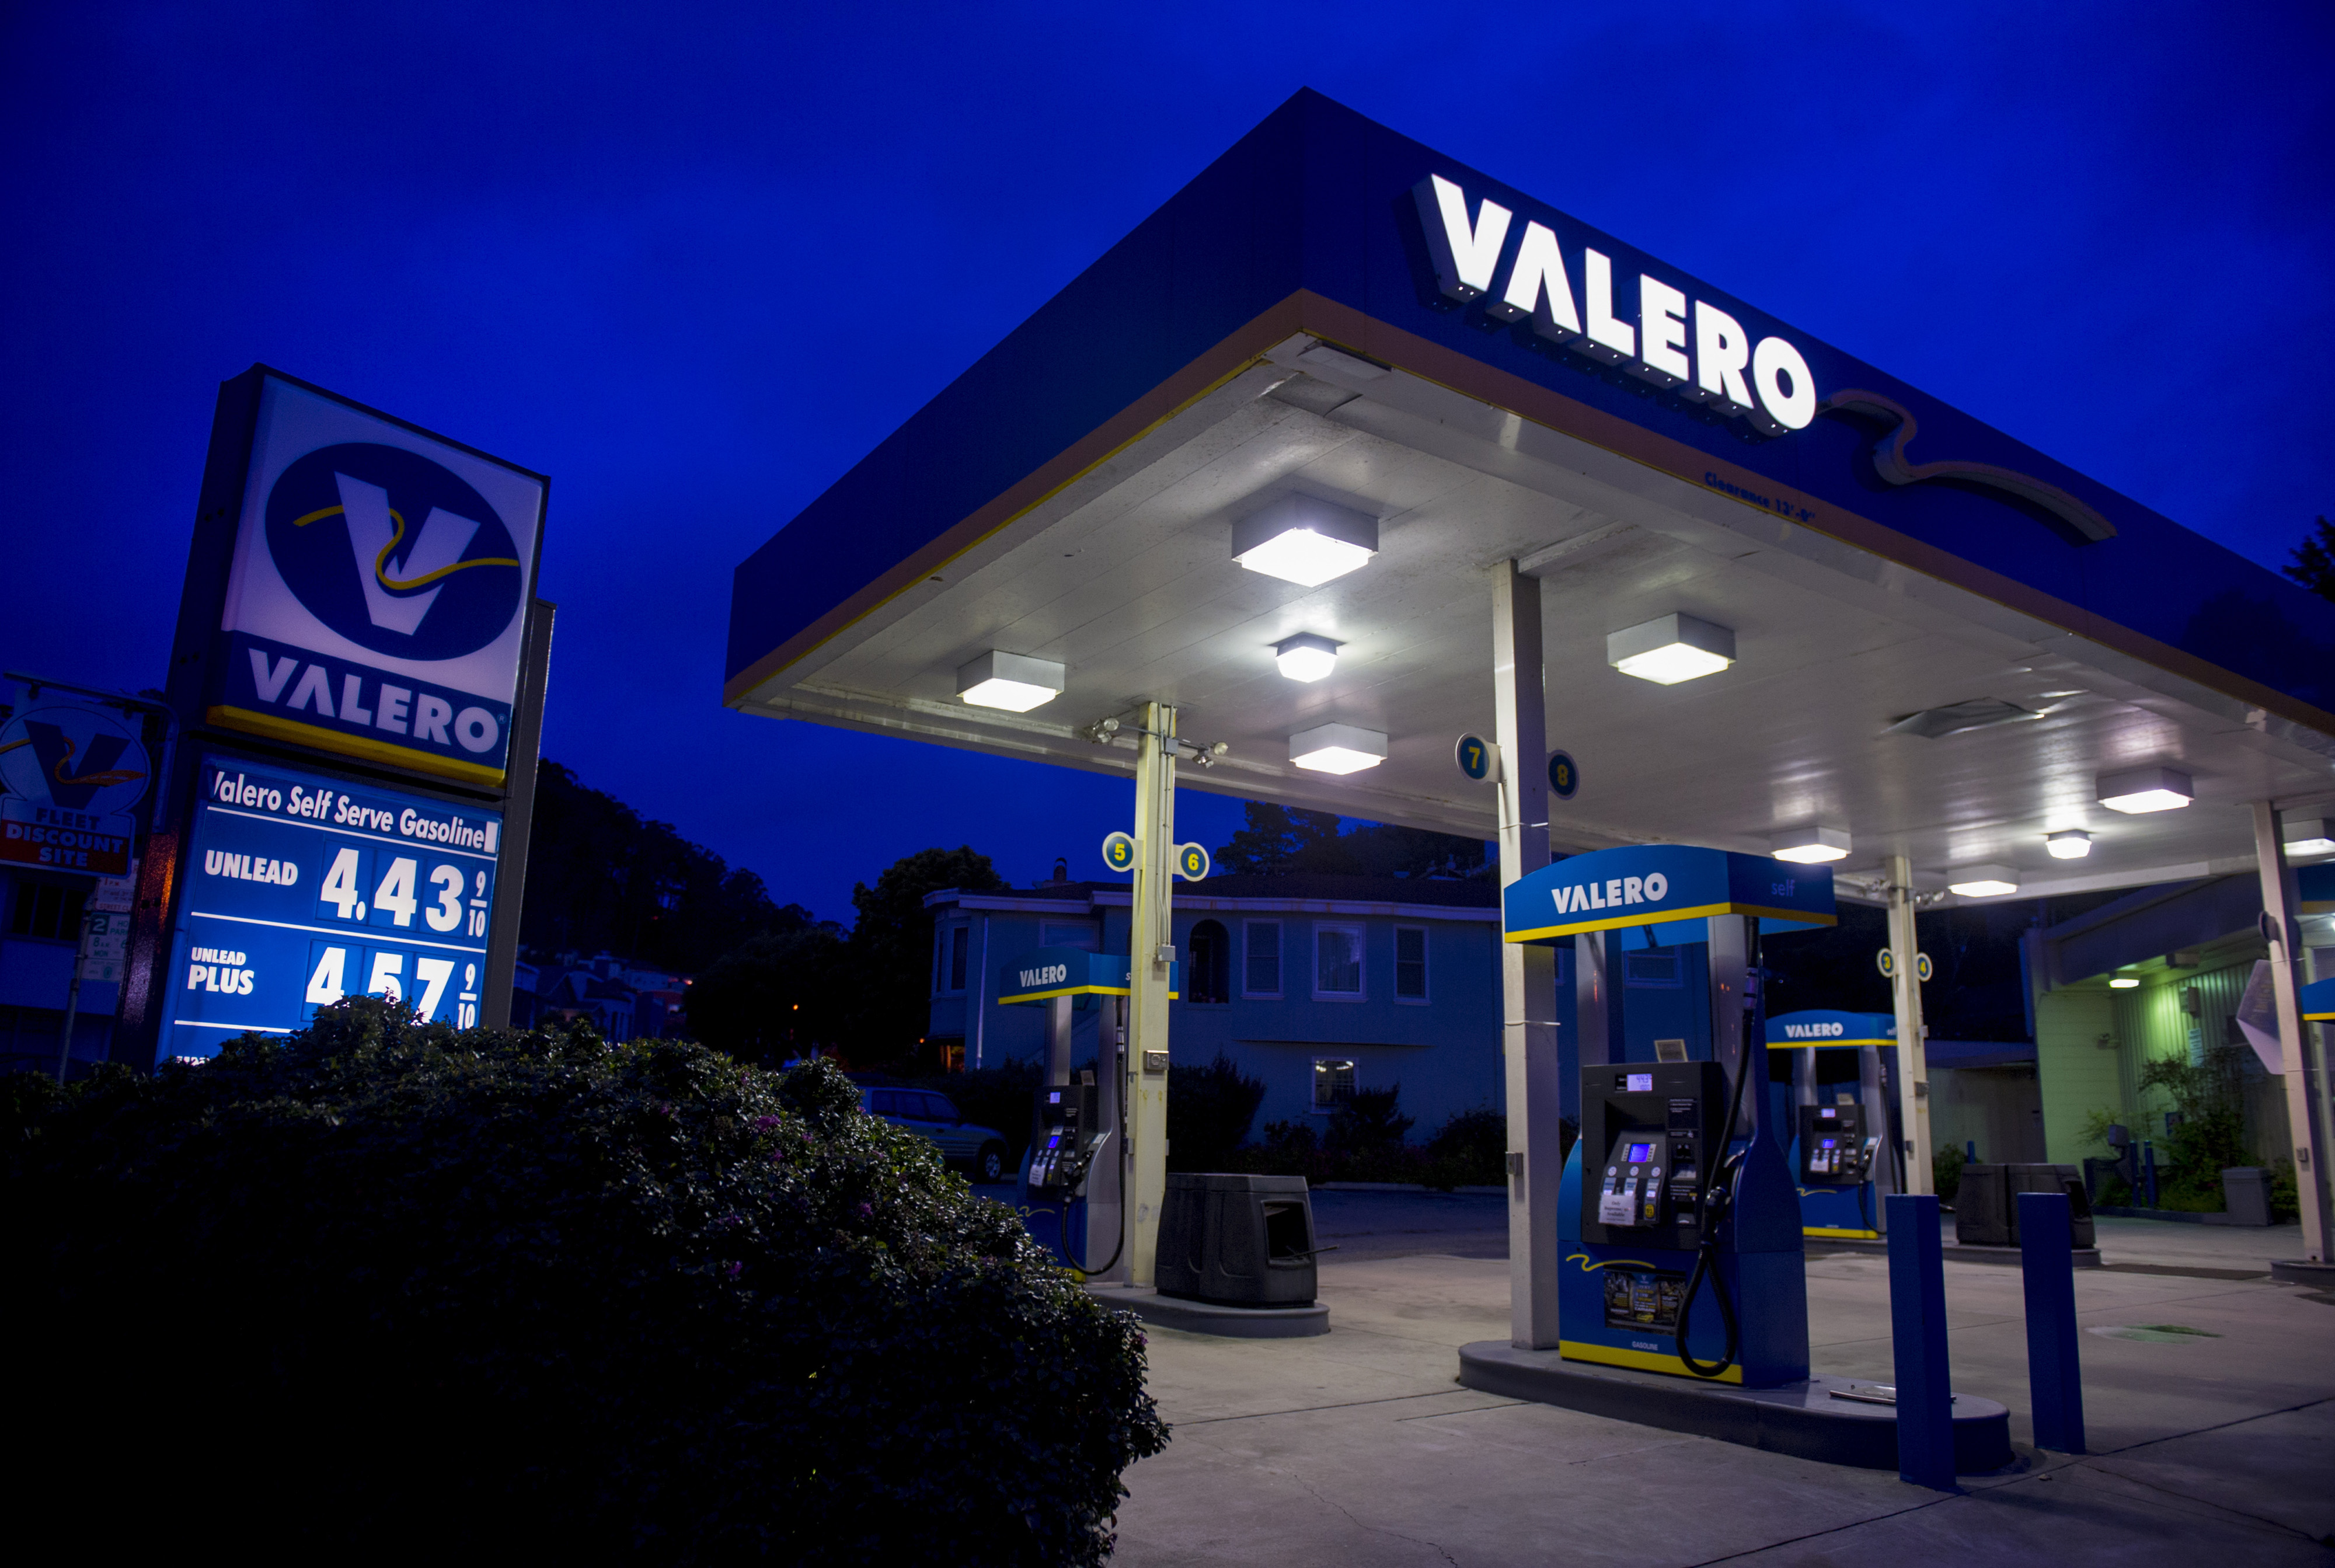 <strong>Valero</strong> Valero has benefited from increased oil and gas production in North America, and the company has said domestic gasoline demand and margins look positive heading into the summer driving season. This comes after some big changes for the refining giant: Valero completed the spin off of its retail business, CST Brands, last year. And earlier this year, the company named its new CEO, Joe Gorder, who was previously the company's chief operating officer.